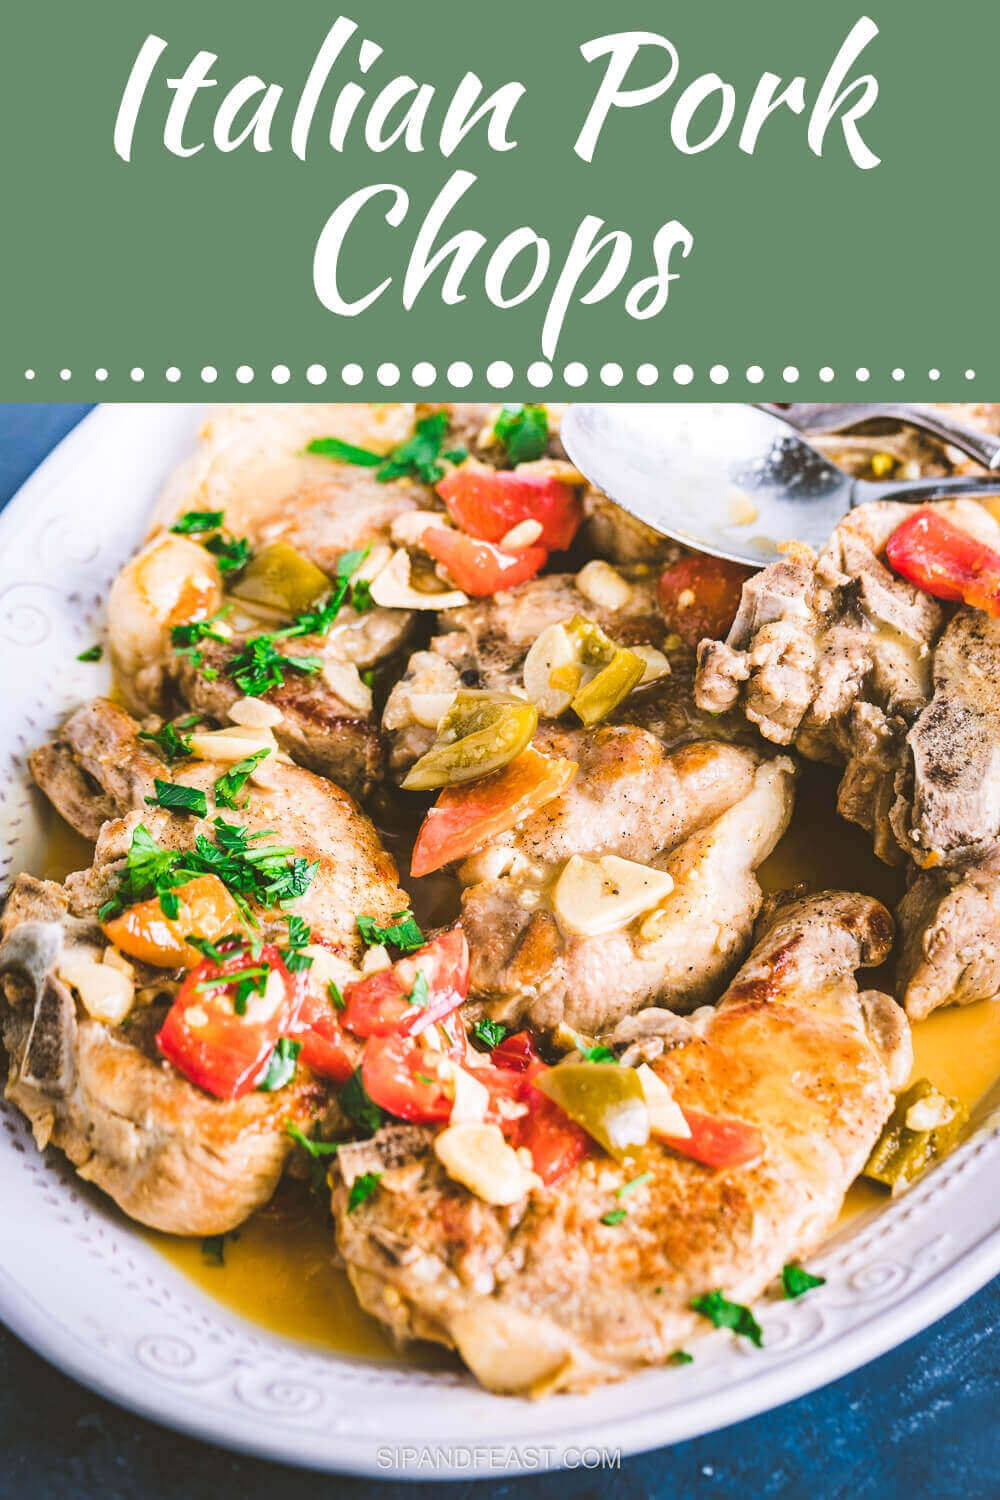 Pork chops with vinegar peppers Pinterest image.